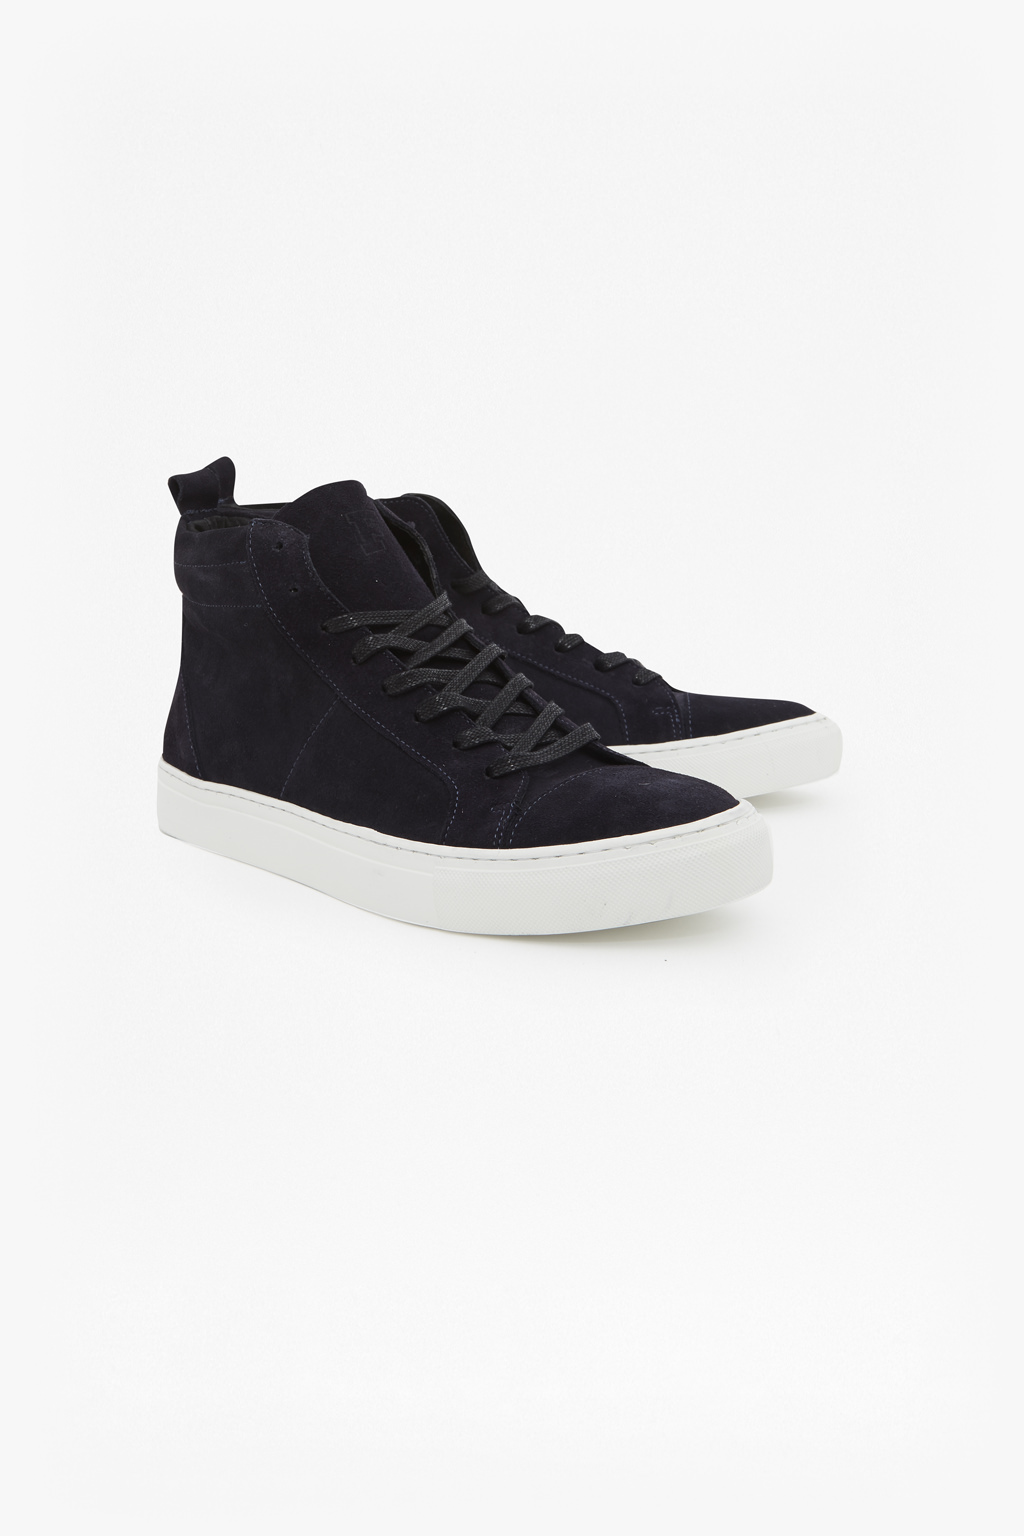 mens high top suede shoes